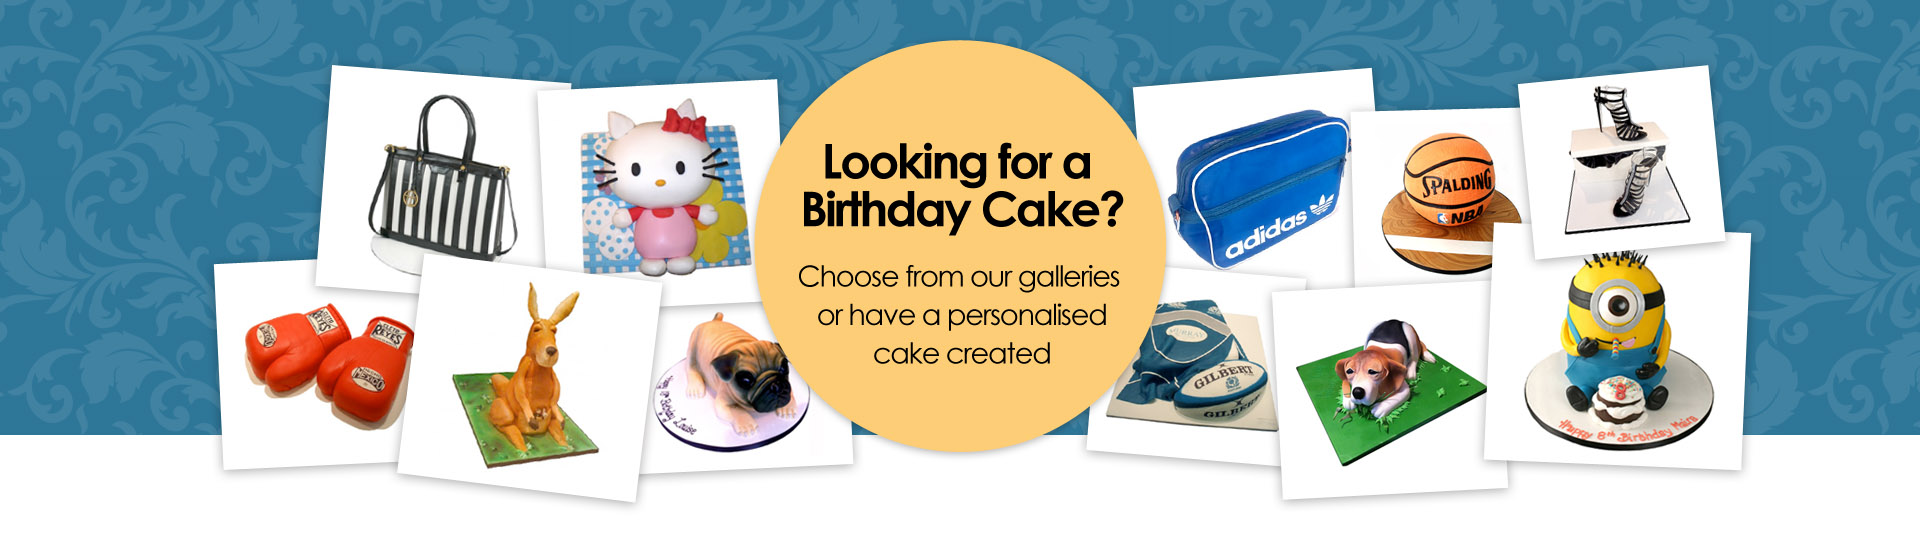 Cake Decorating Classes Scotland : Video 3D CAKE DECORATING CLASSES EDINBURGH 738